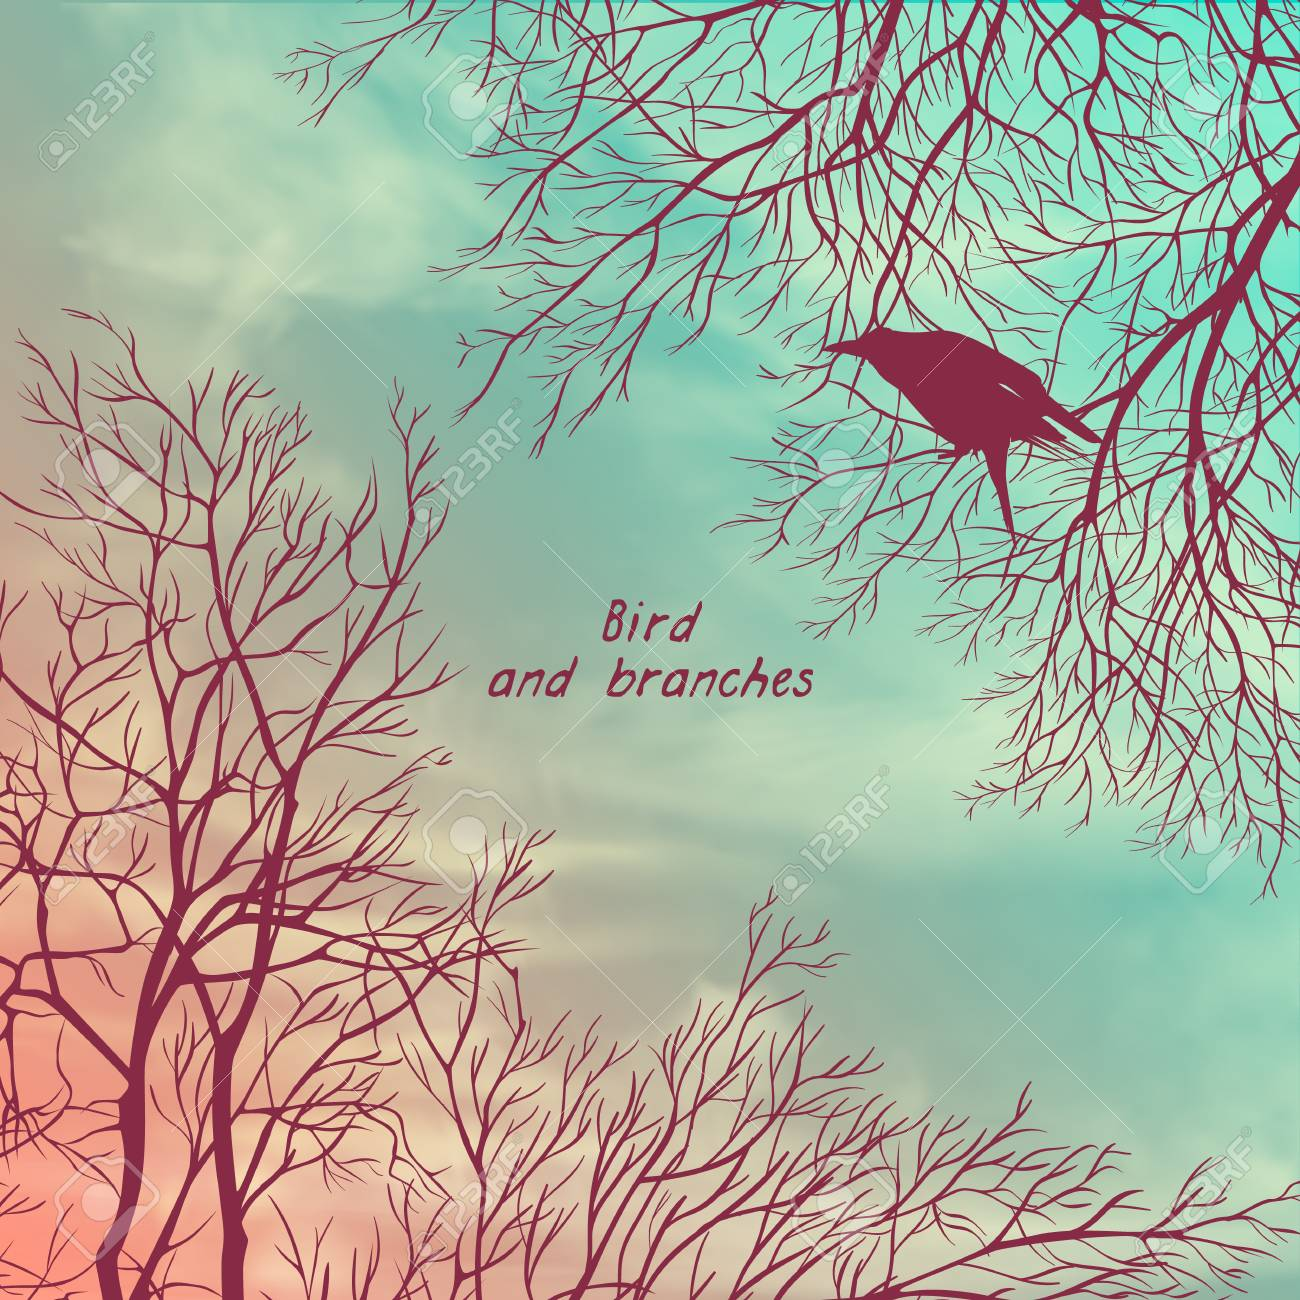 Square Banner With Crows And Tree Branches Template For Postcard